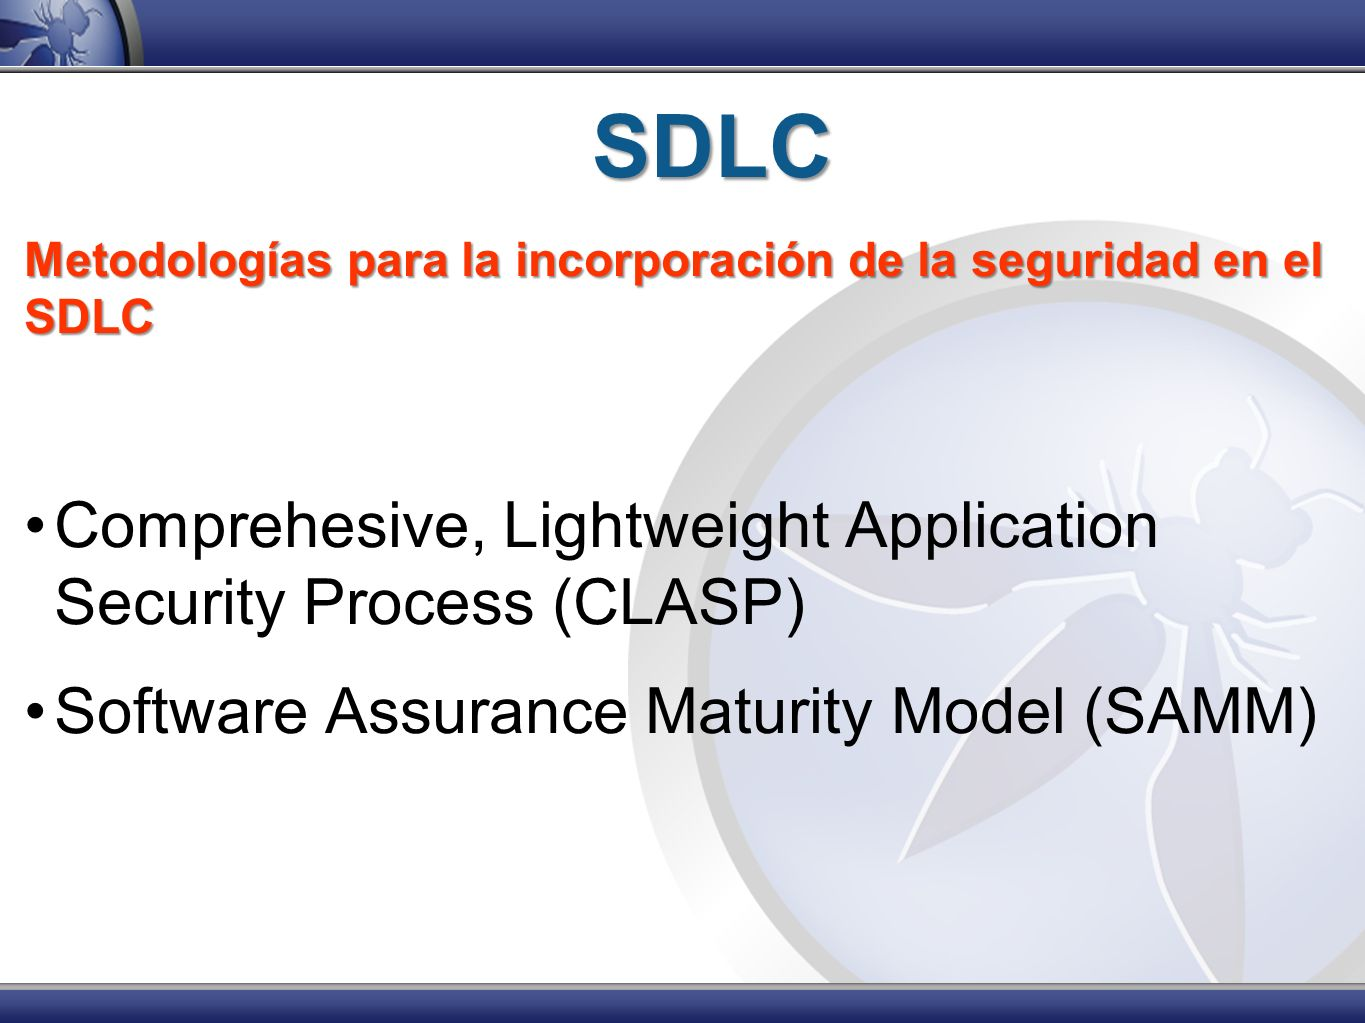 SDLC Comprehesive, Lightweight Application Security Process (CLASP)